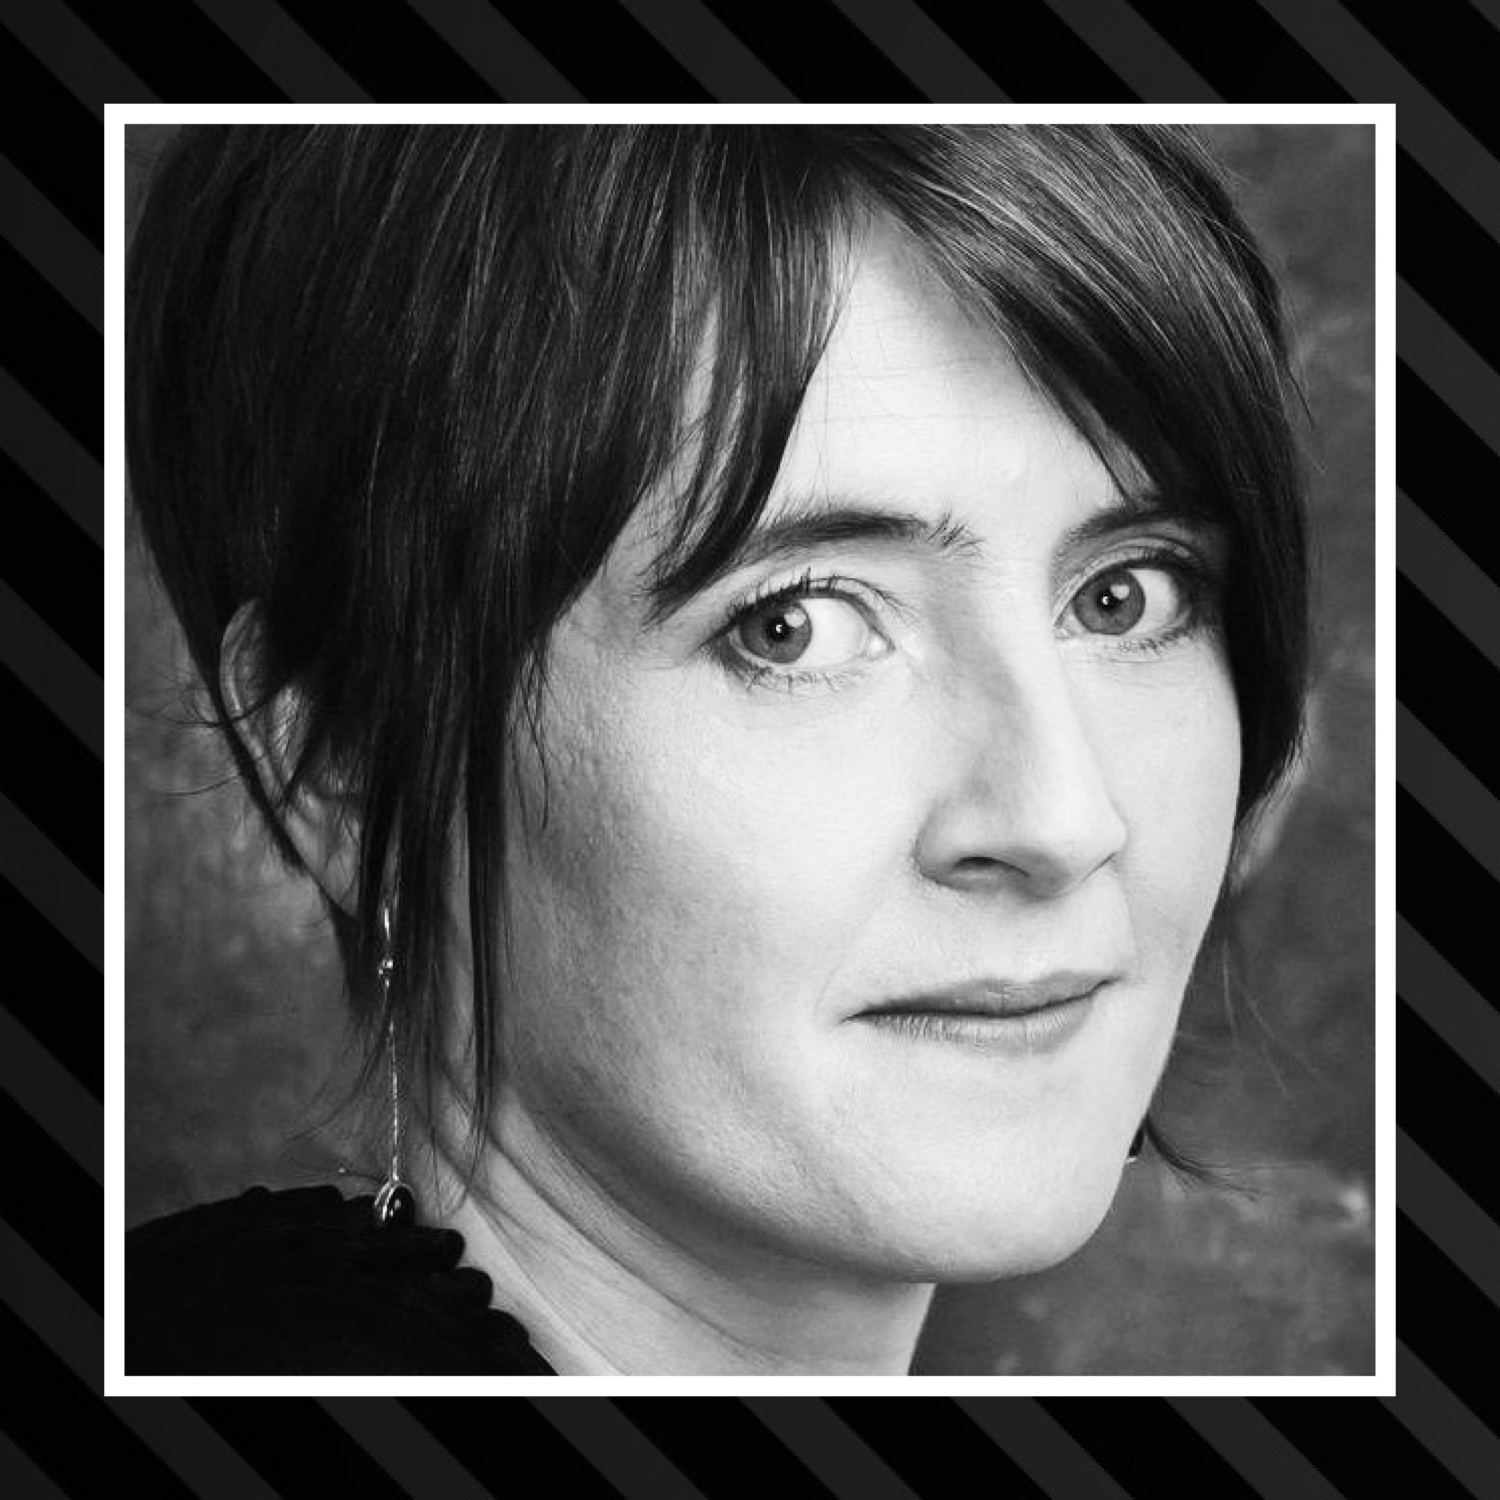 BC2: The one with Malinky's Karine Polwart